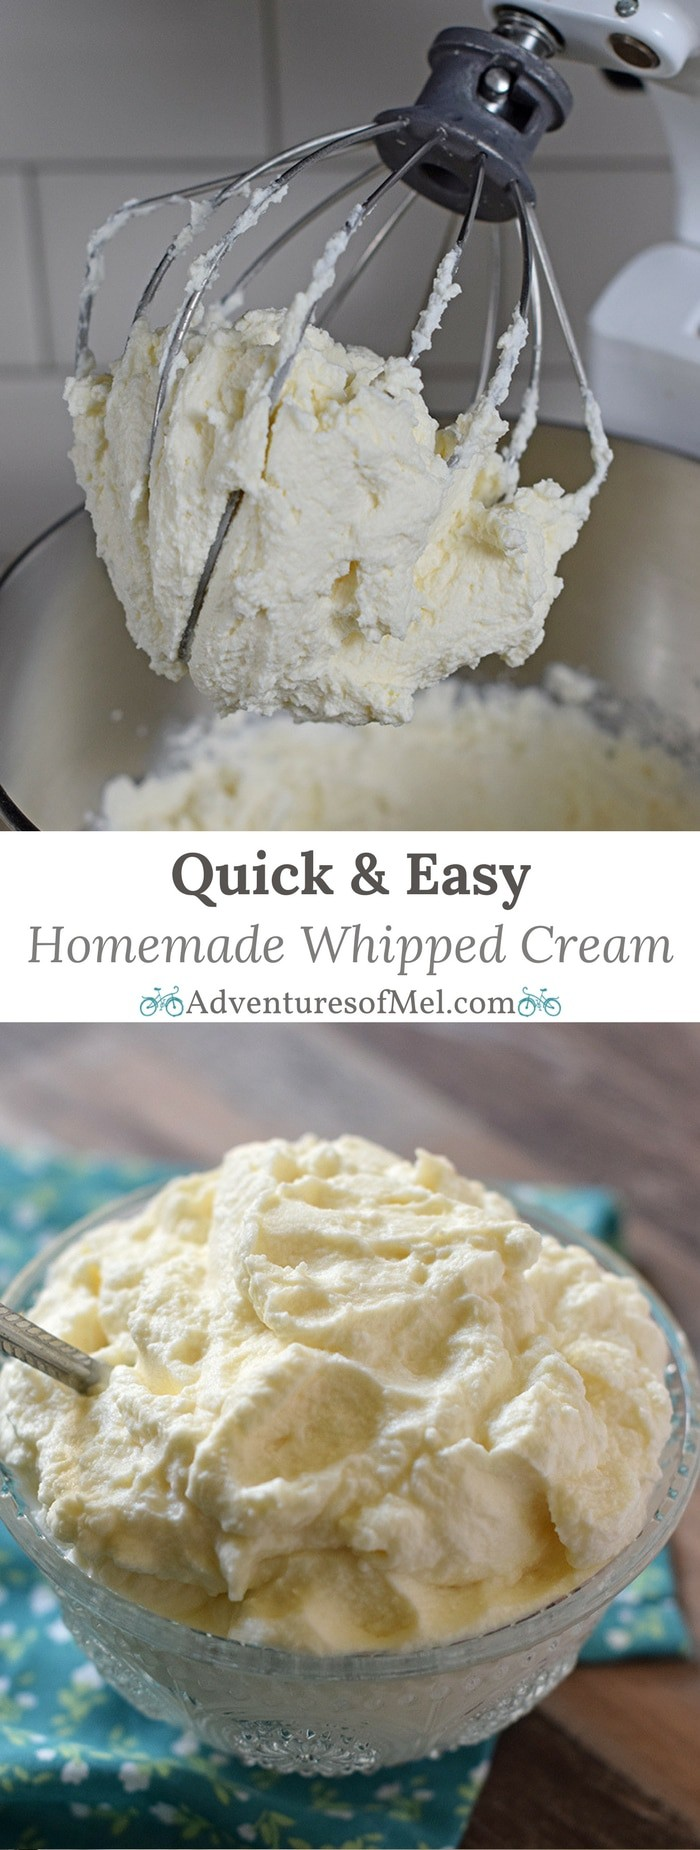 Make homemade whipped cream in 5 minutes with this quick and easy recipe. Only 4 ingredients and you have a creamy delicious topping for all your favorite desserts.